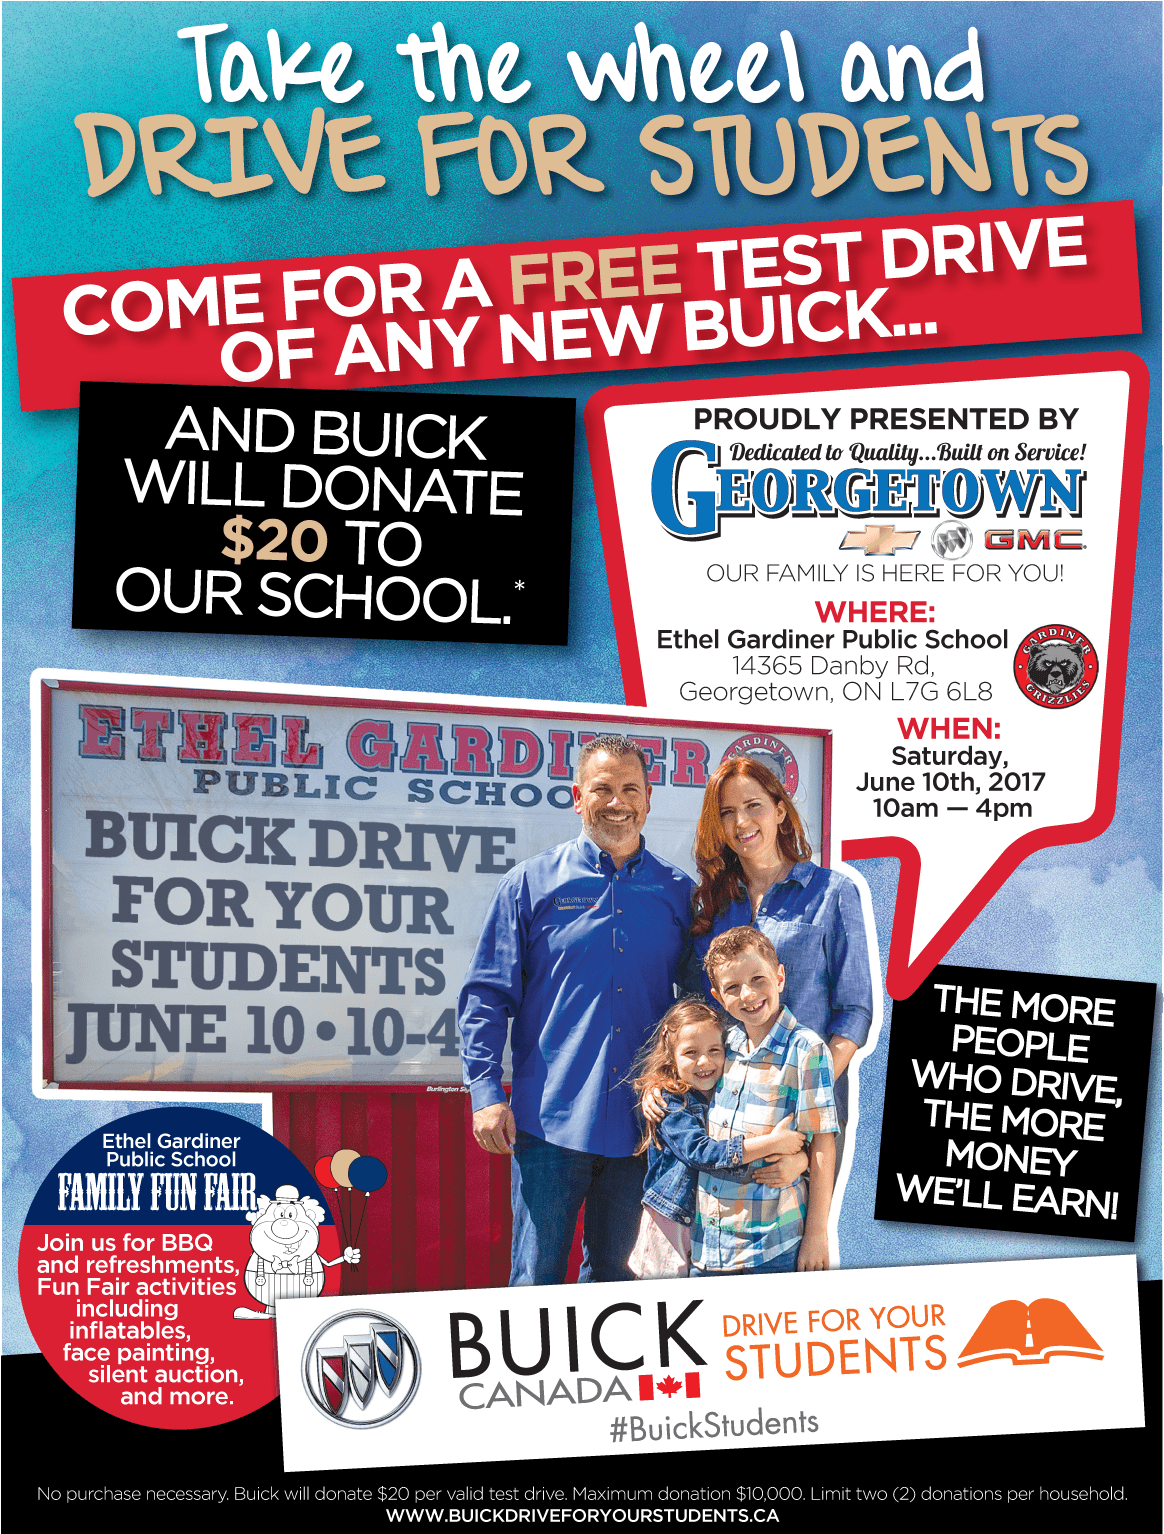 Test drive a new Buick. Help Buick donate up to $10,000 for our school